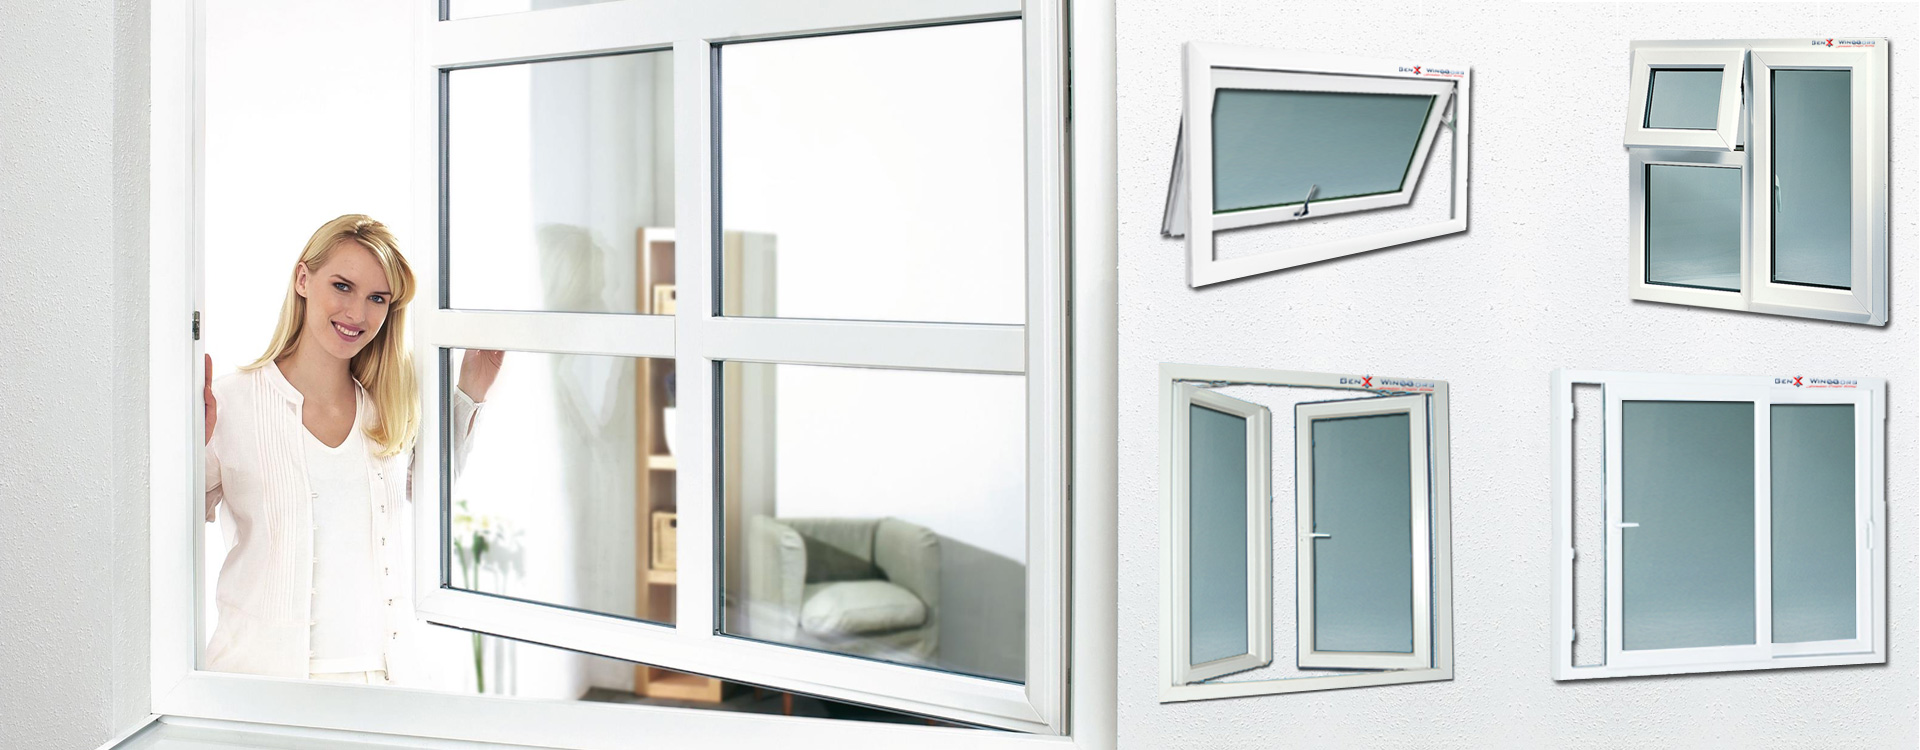 Upvc doors and windows windows doors systems upvc for Upvc french doors india